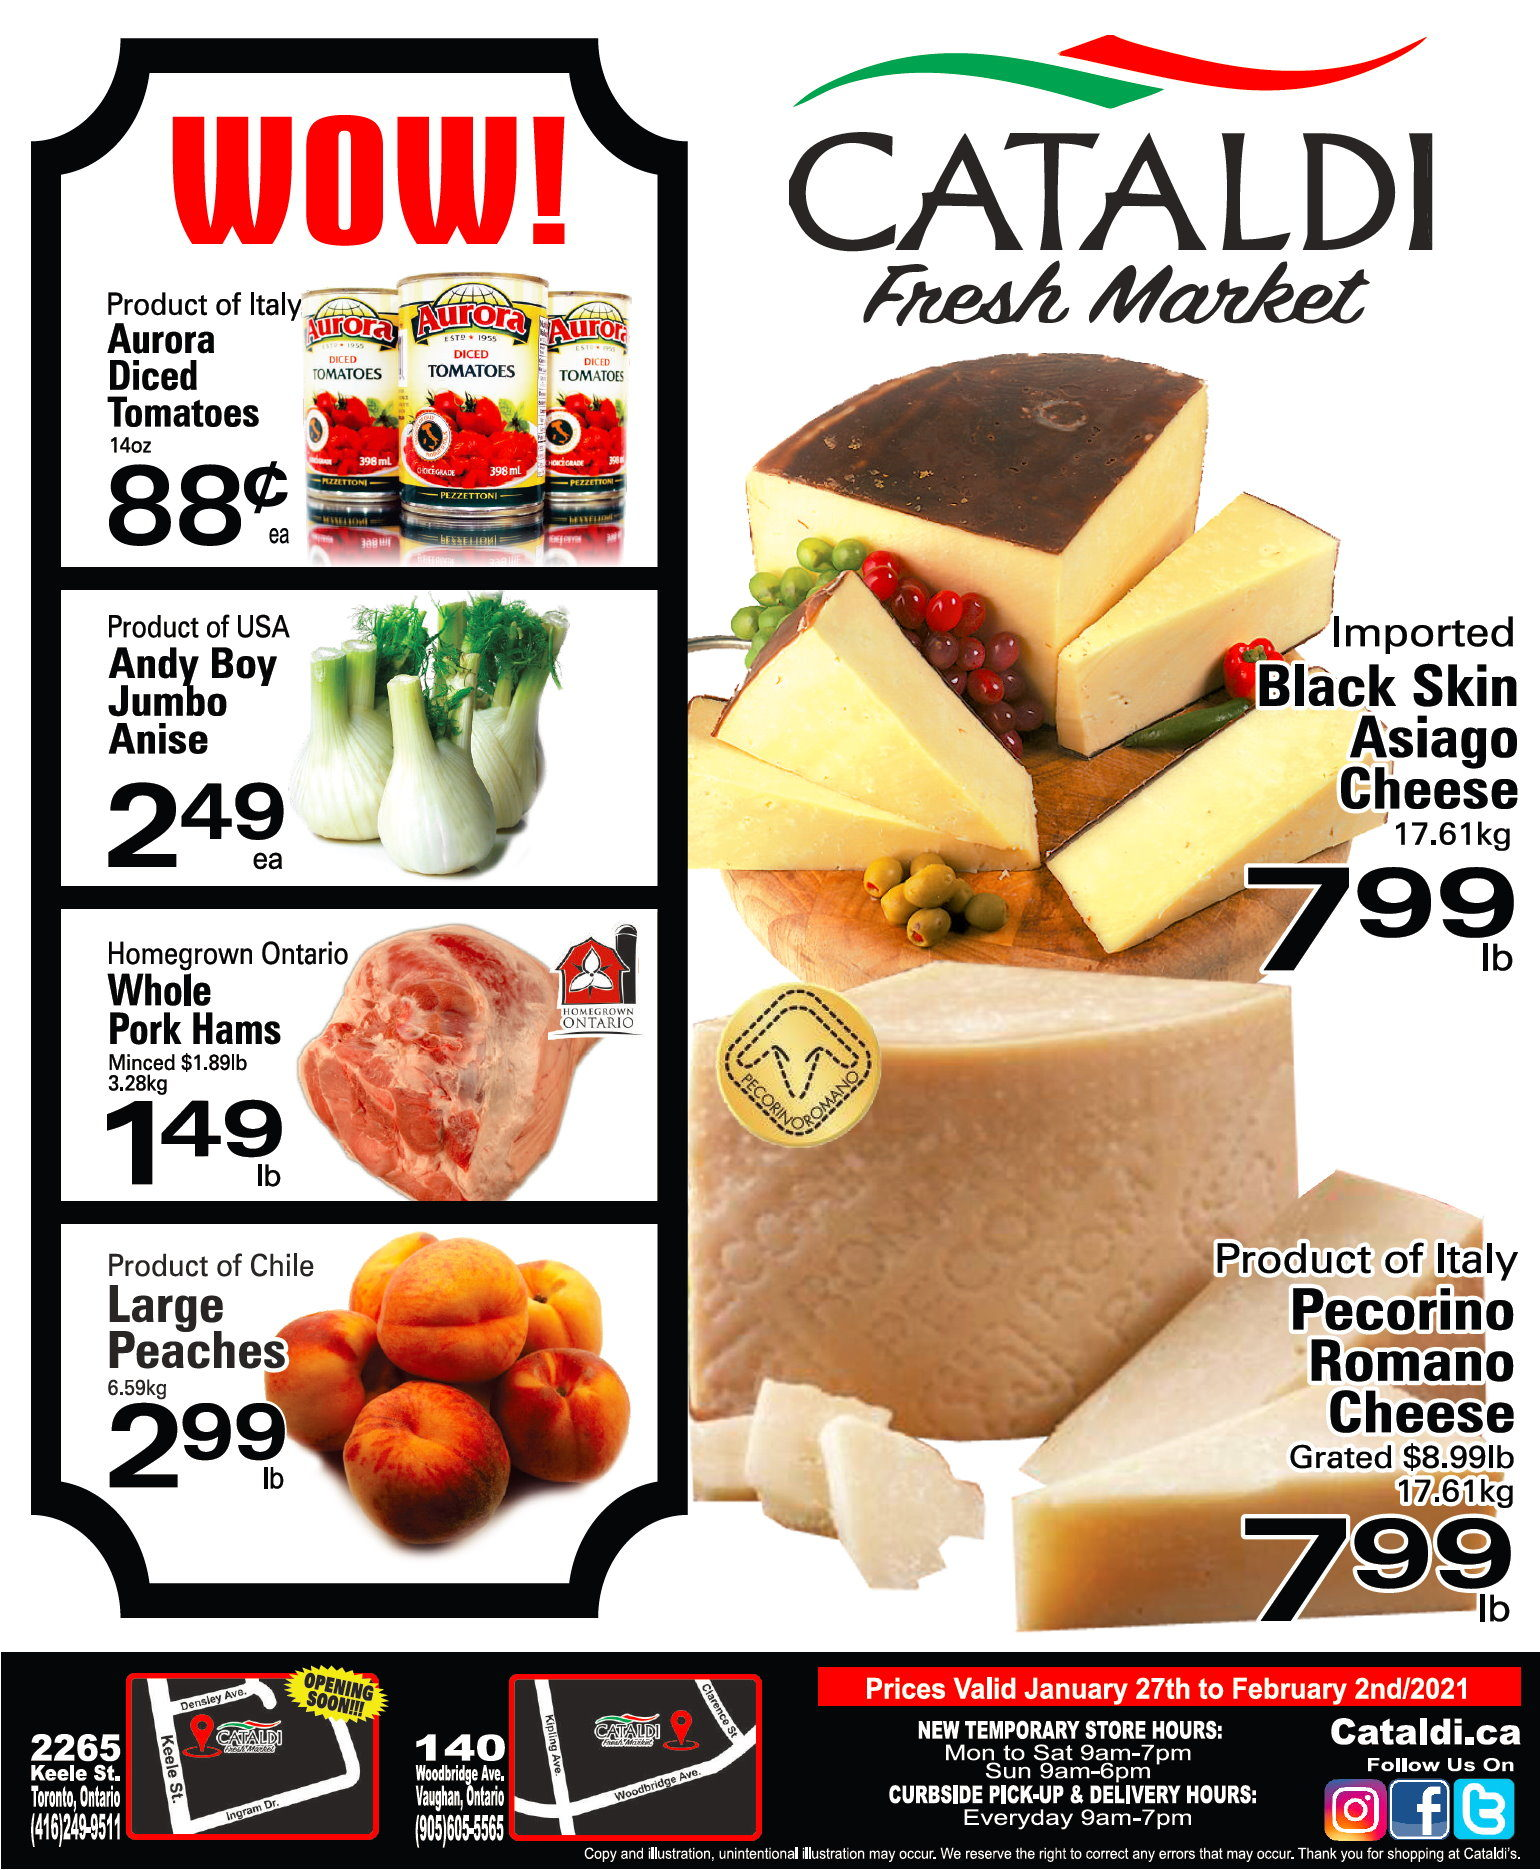 Cataldi - Weekly Flyer Specials